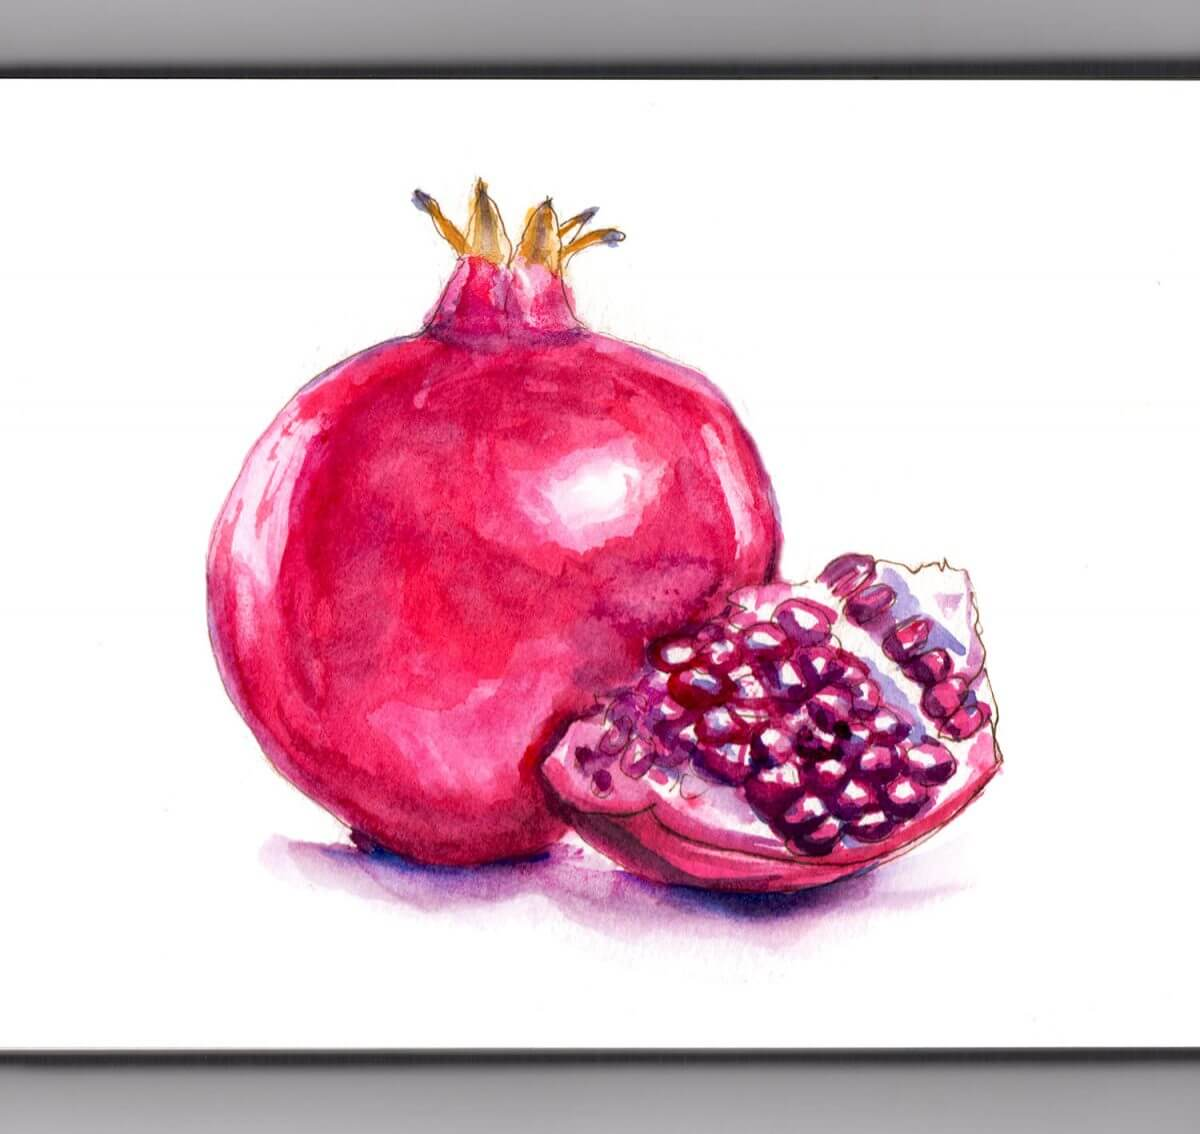 #WorldWatercolorGroup - Day 3 - Pomegranate Watercolor - Doodlewash